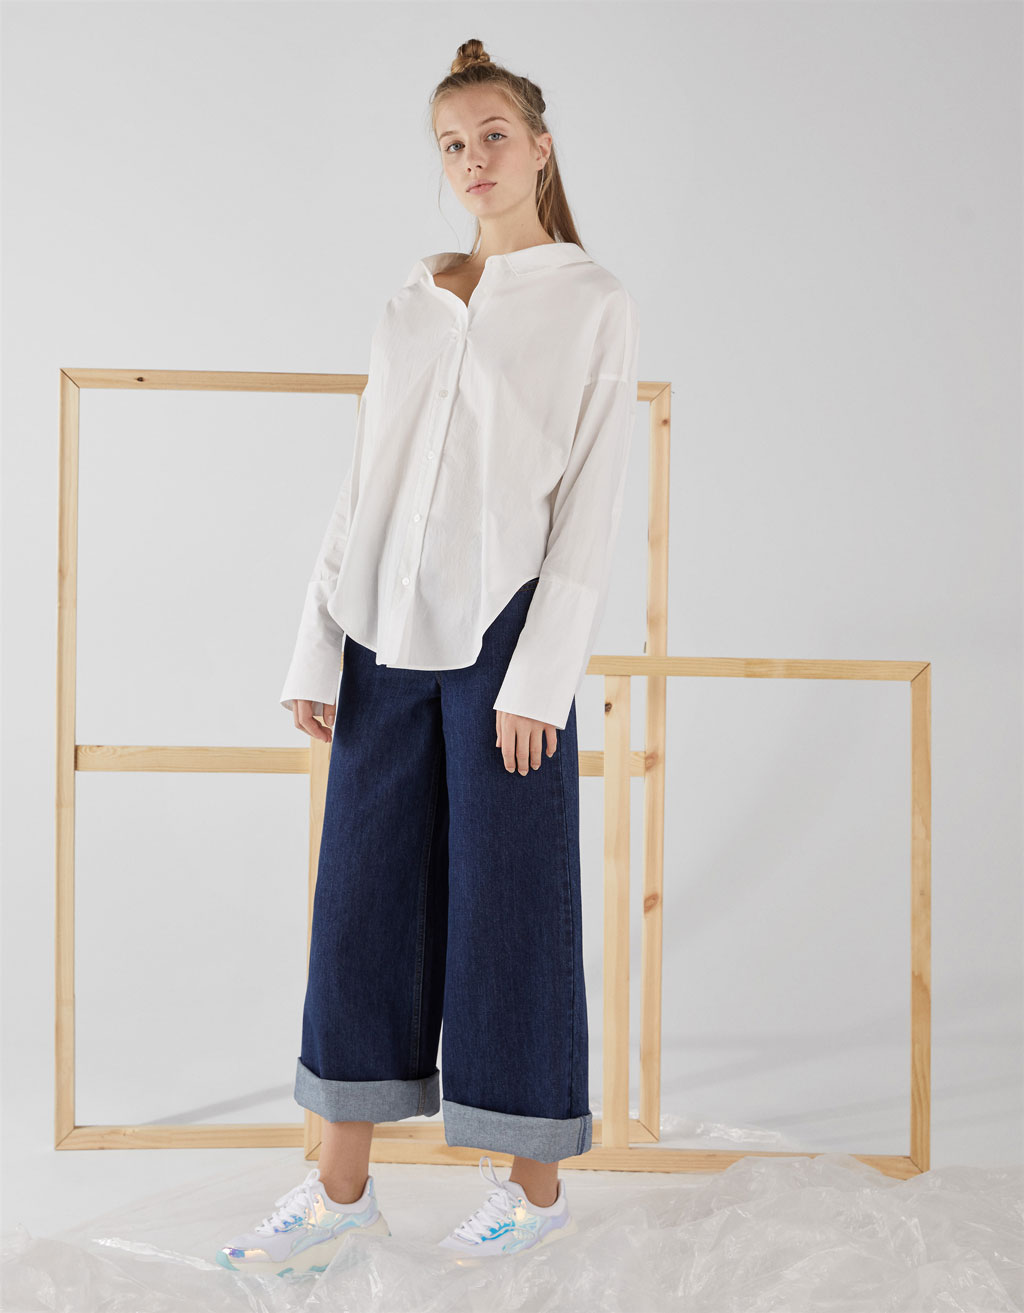 Oversized shirt with V-neck